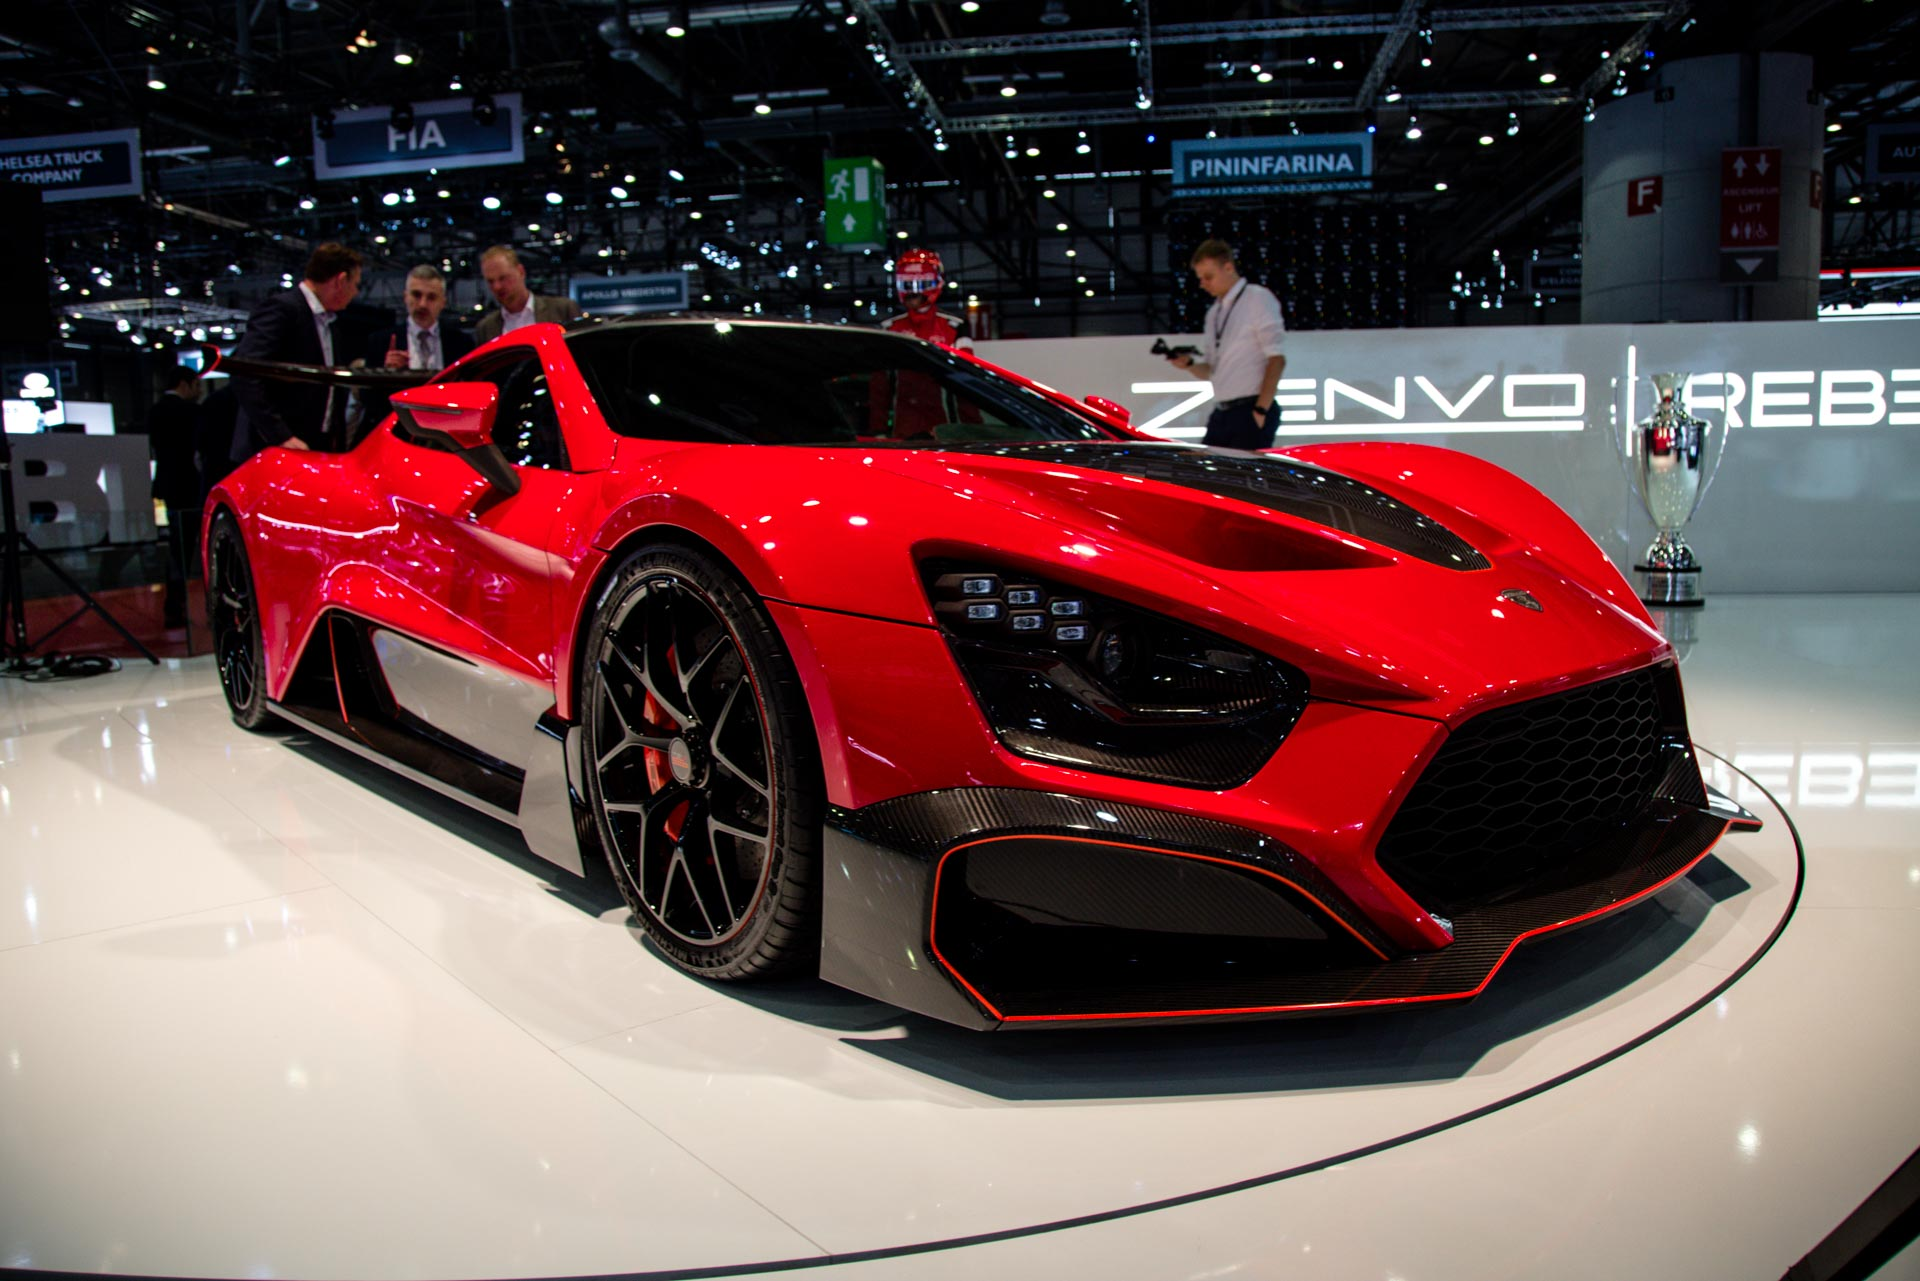 Zenvo At The Geneva Motor Show GTspirit - Geneva car show